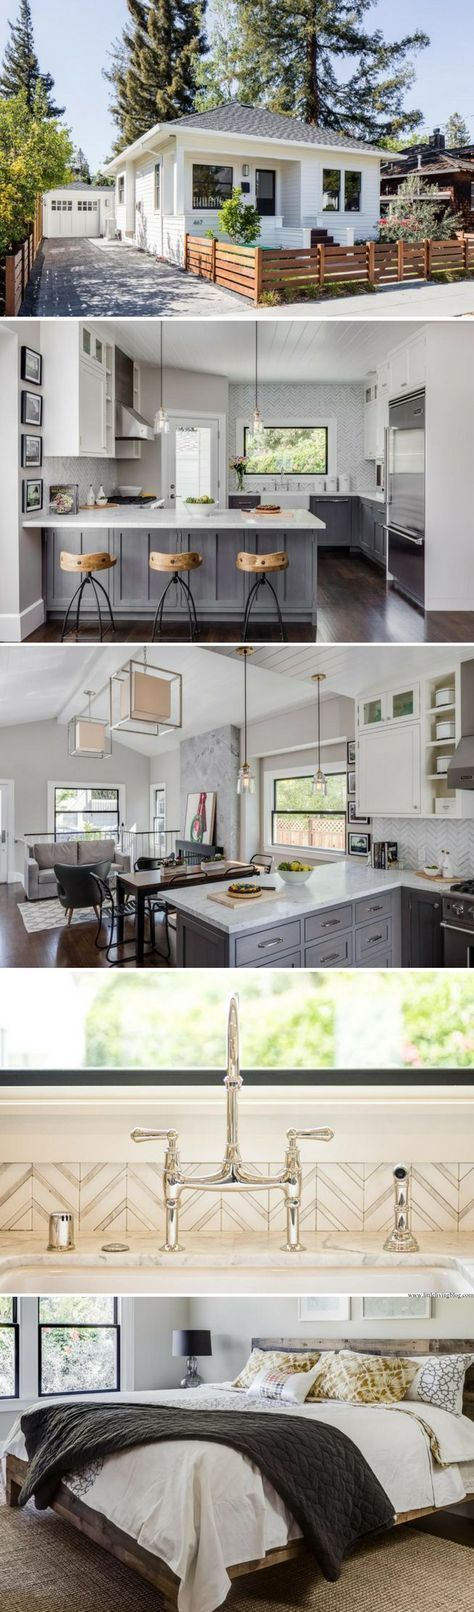 A Napa Valley cottage designed by Lindsay